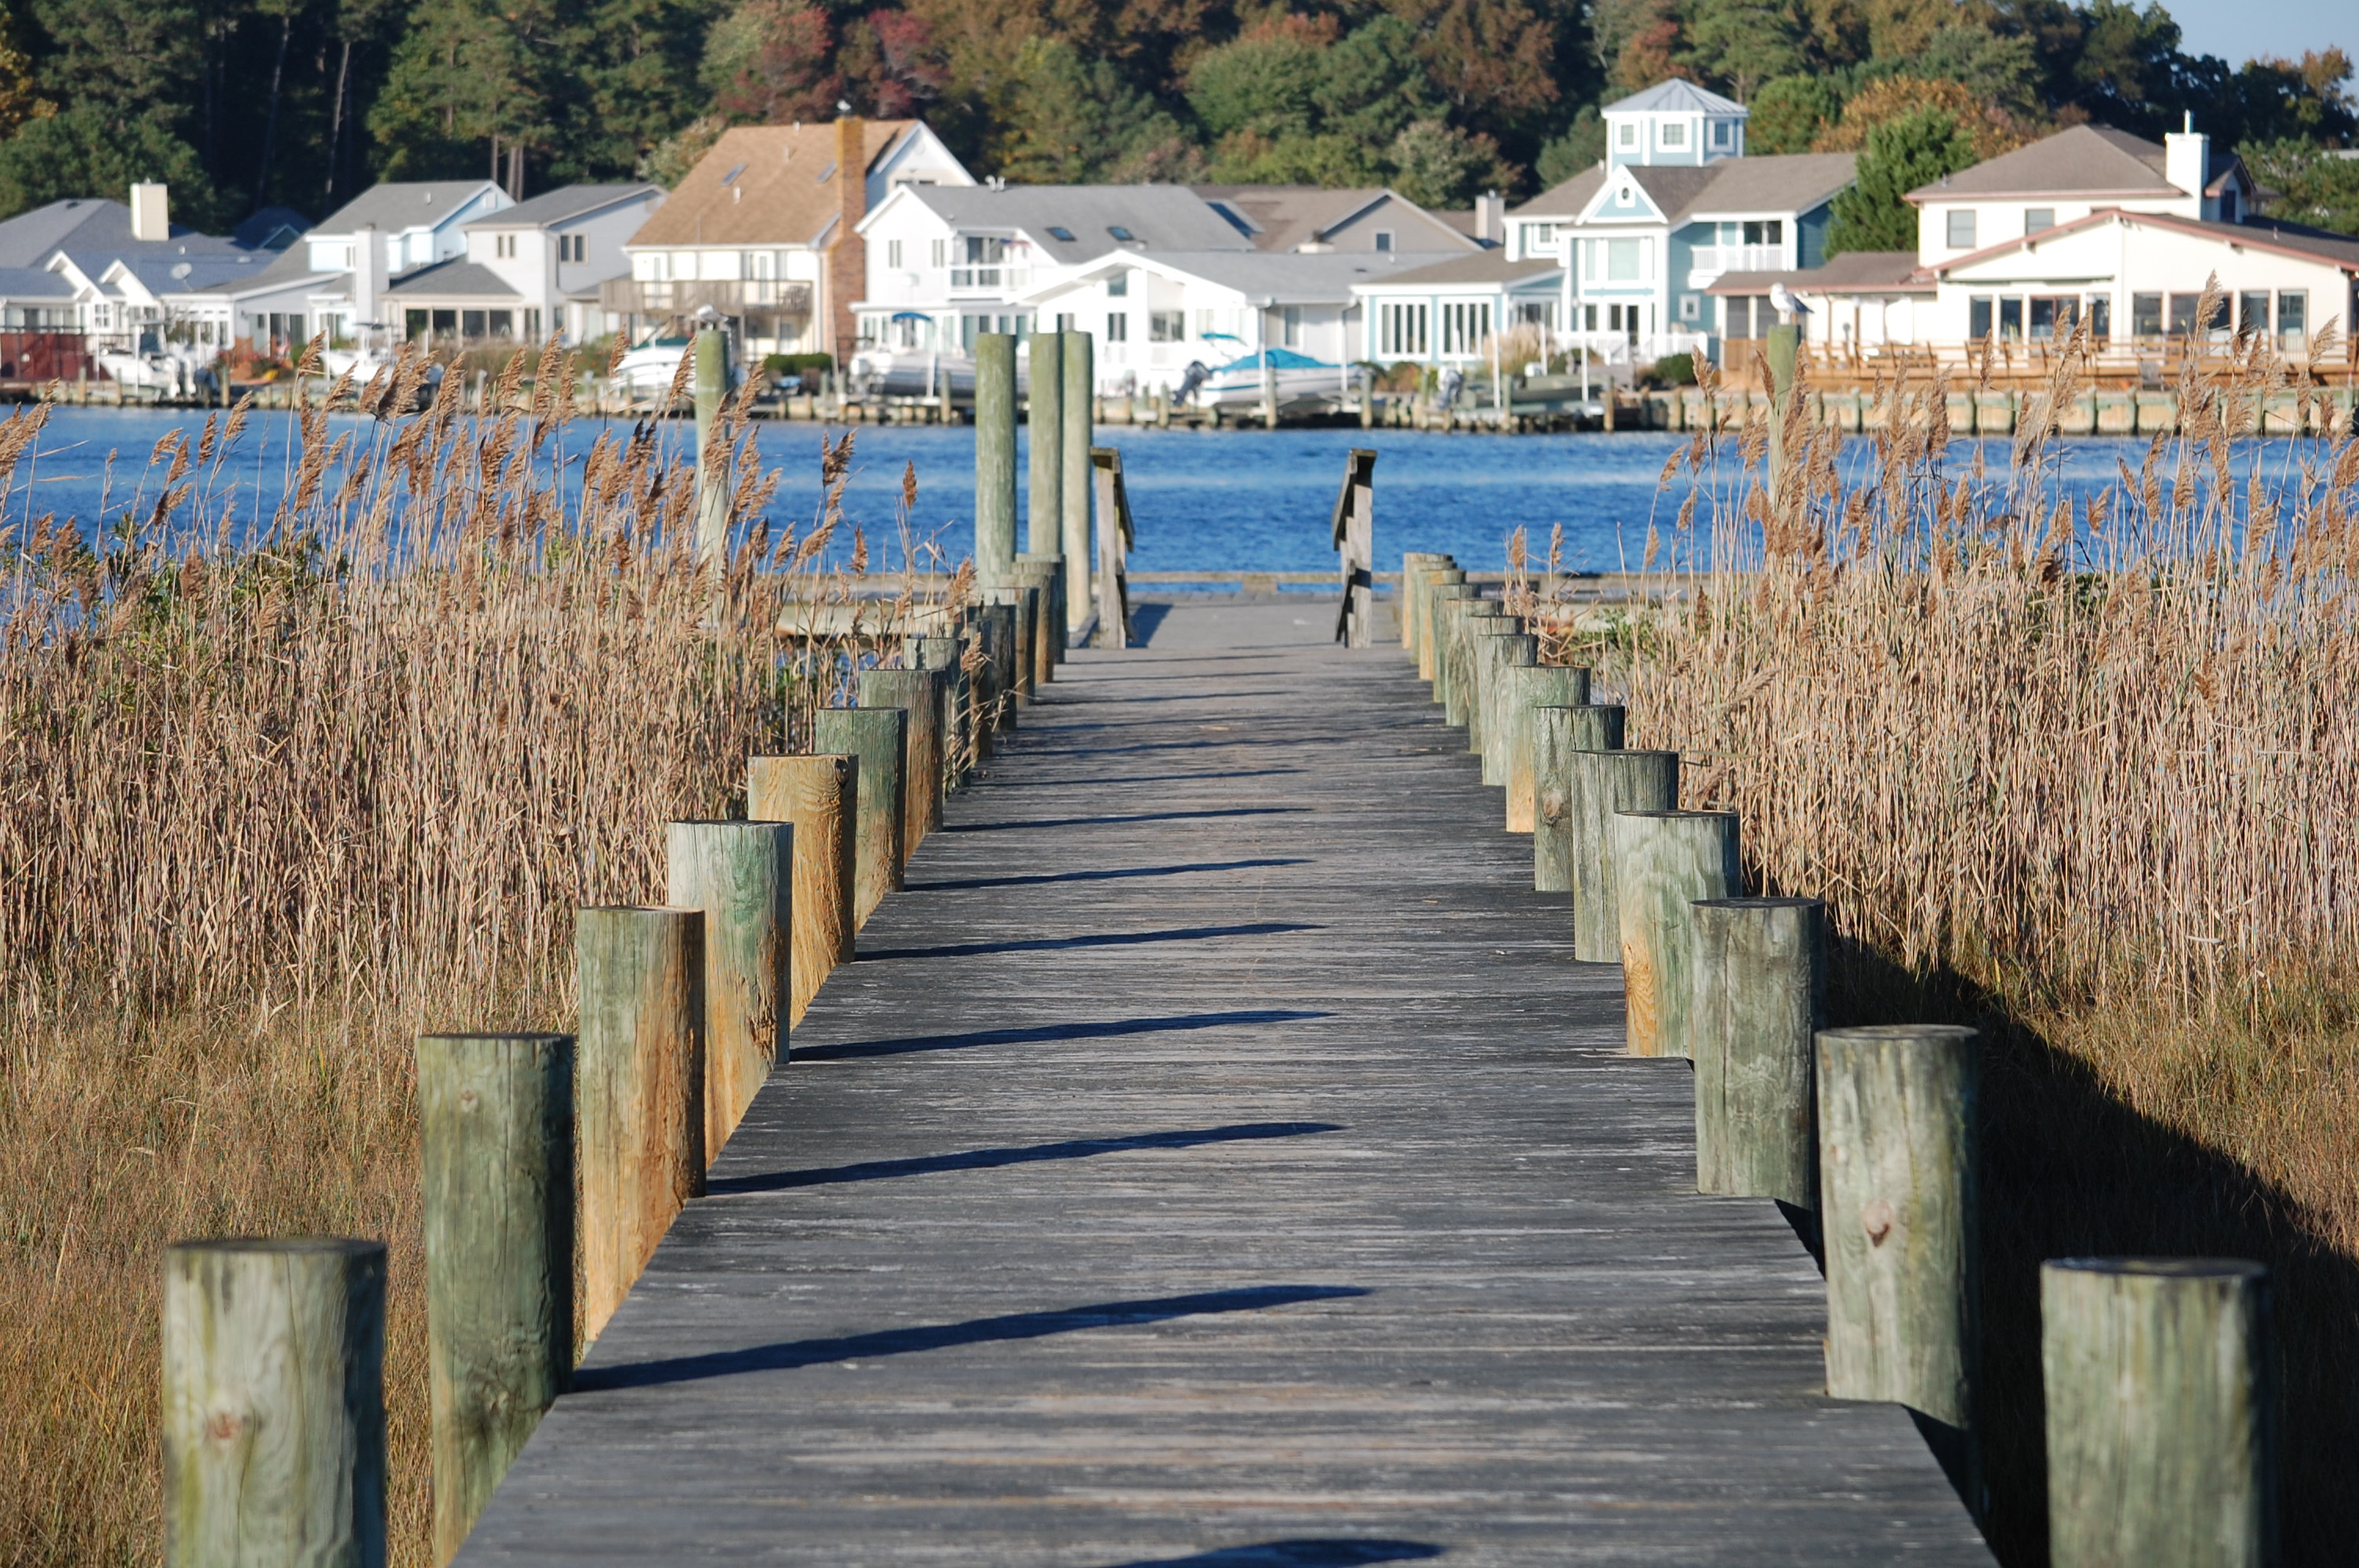 Ocean Pines Md >> Ocean Pines Md Homes For Sale Waterfront Maryland Homes